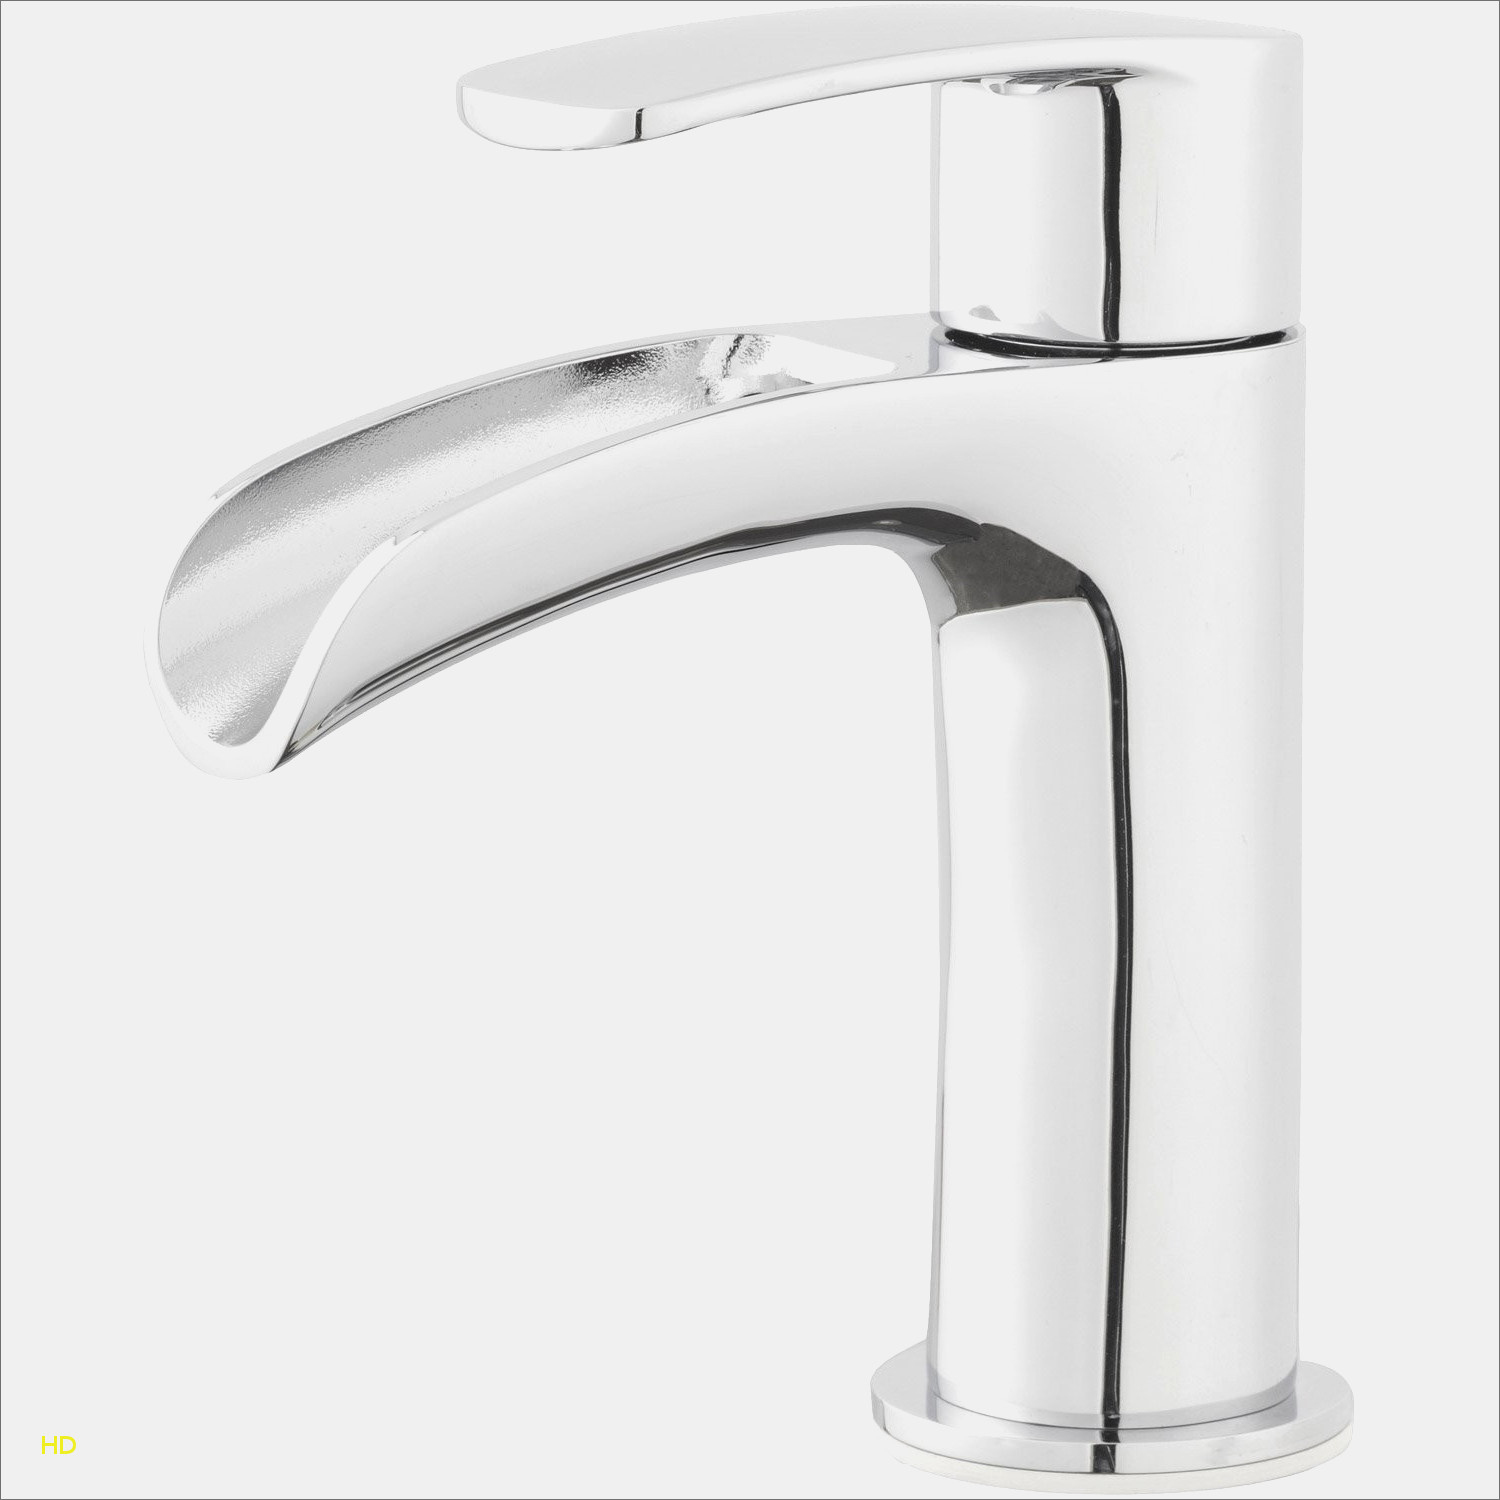 Grohe Robinet Baignoire Mitigeur Baignoire Grohe Castorama Beau Collection